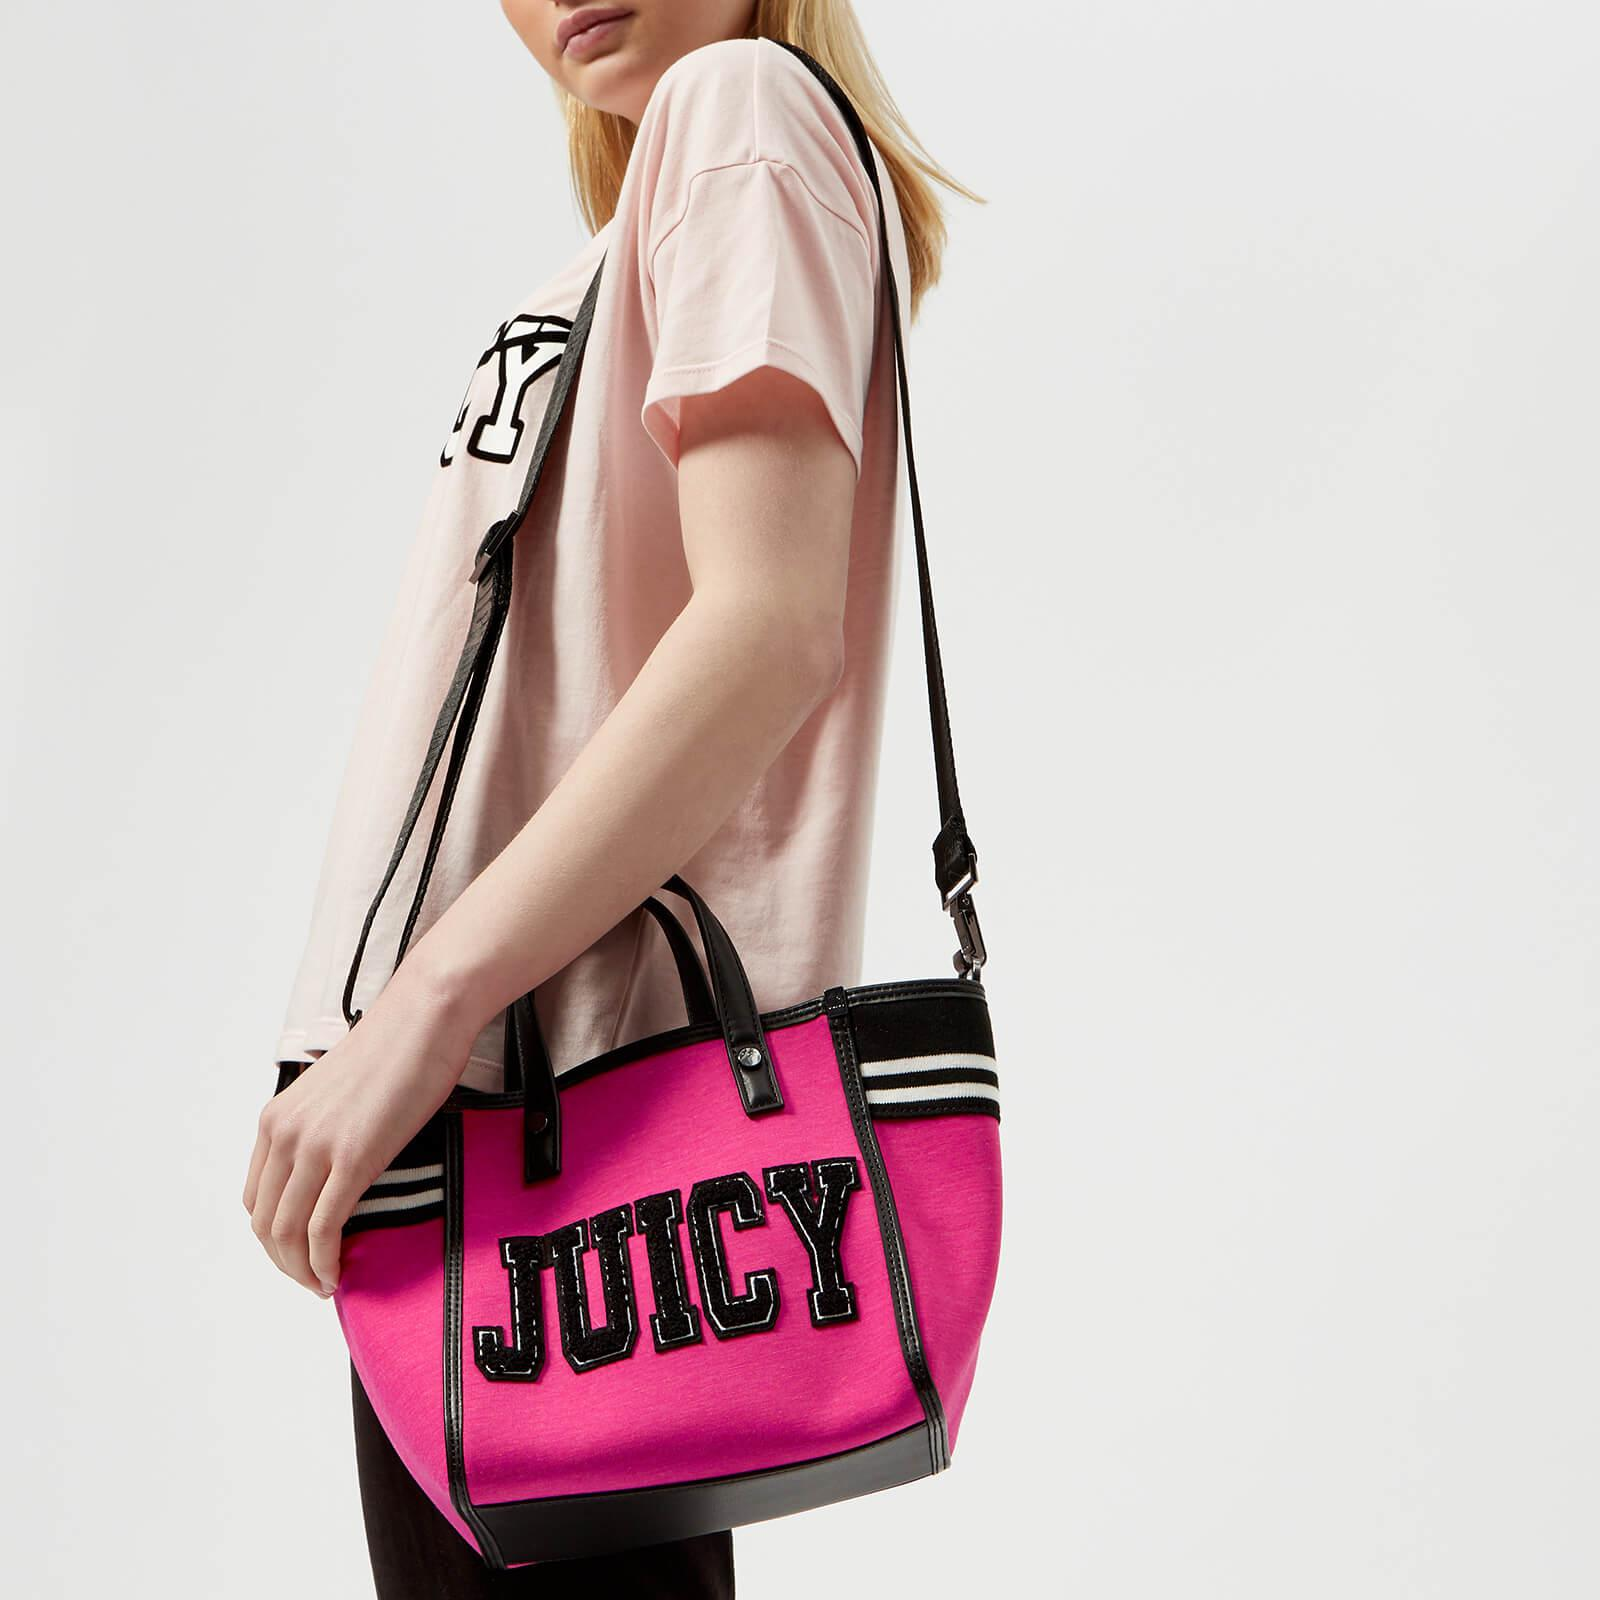 44135a9fd Juicy Couture Logo Tote in Pink - Lyst